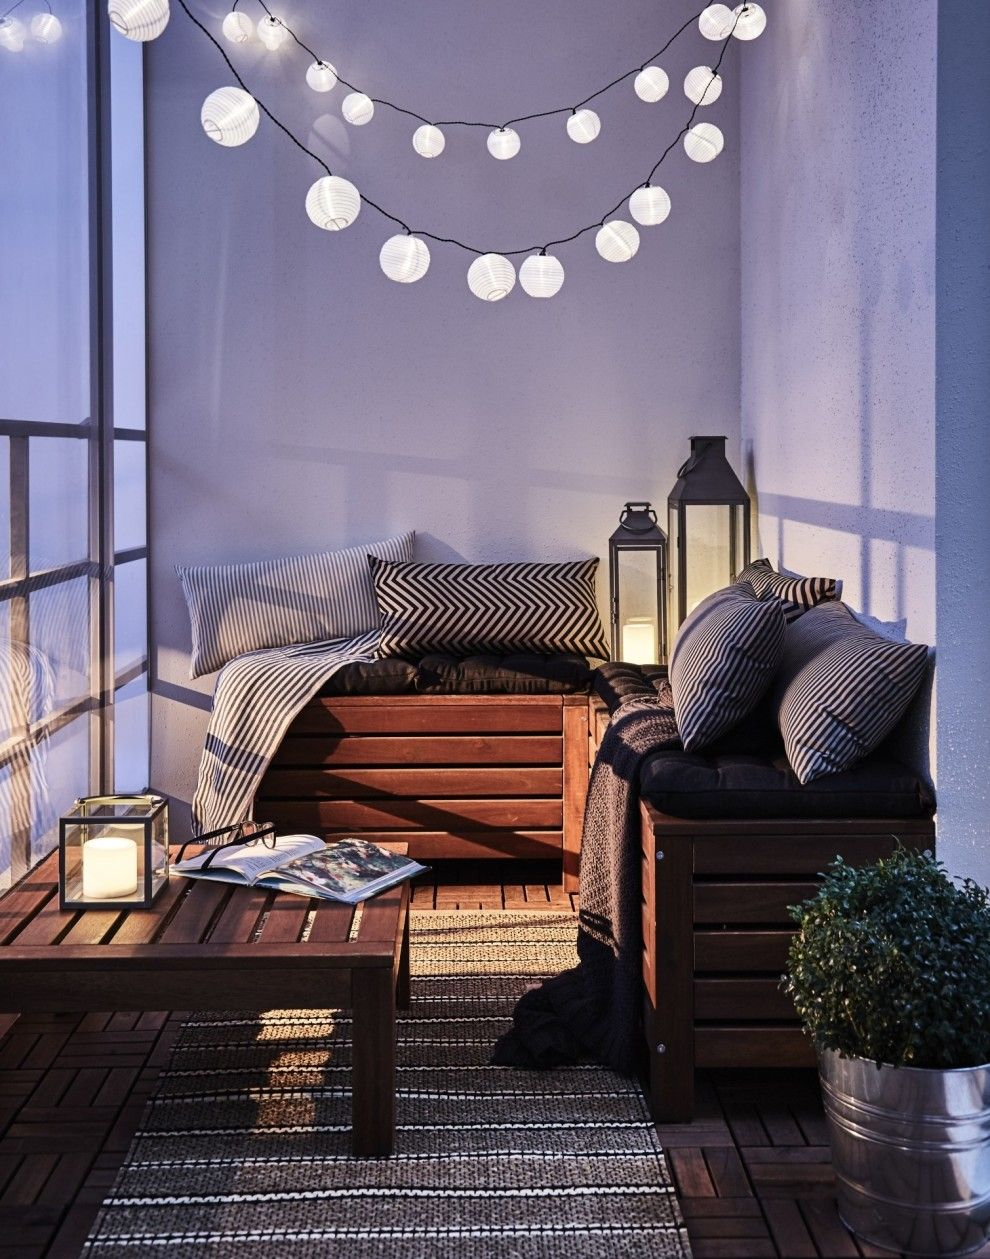 12 ikea products that will transform your backyard into a magical